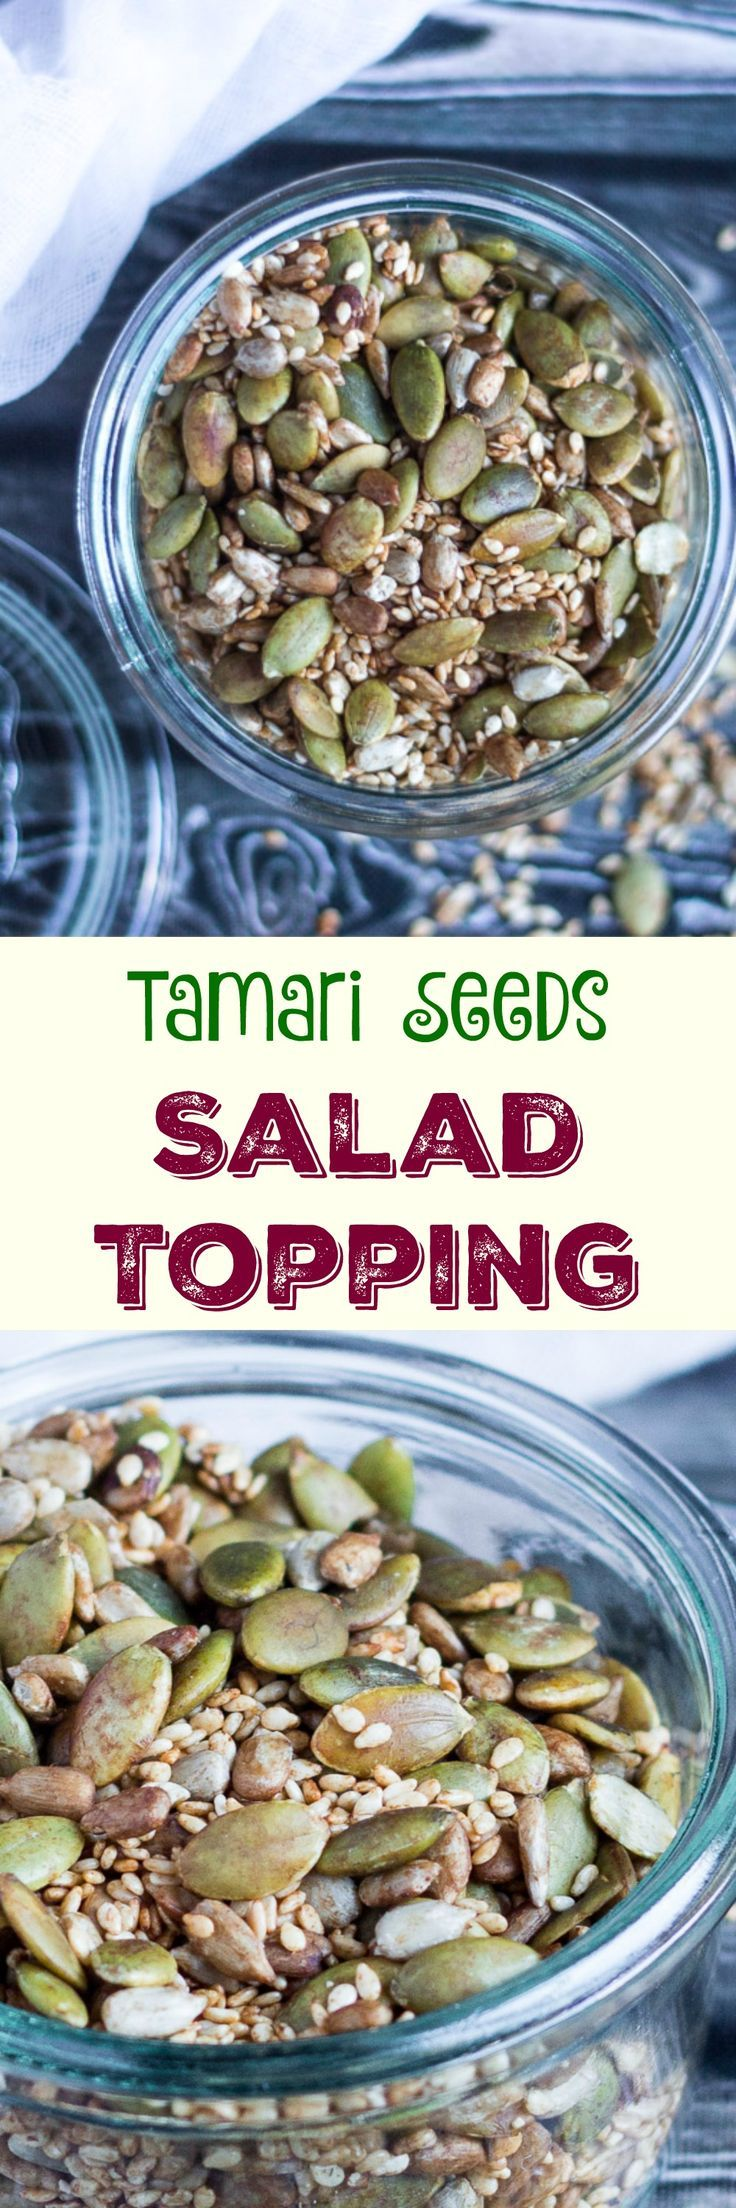 Tamari Seeds Salad Topping. Add a savoury crunch to a simple green salad.